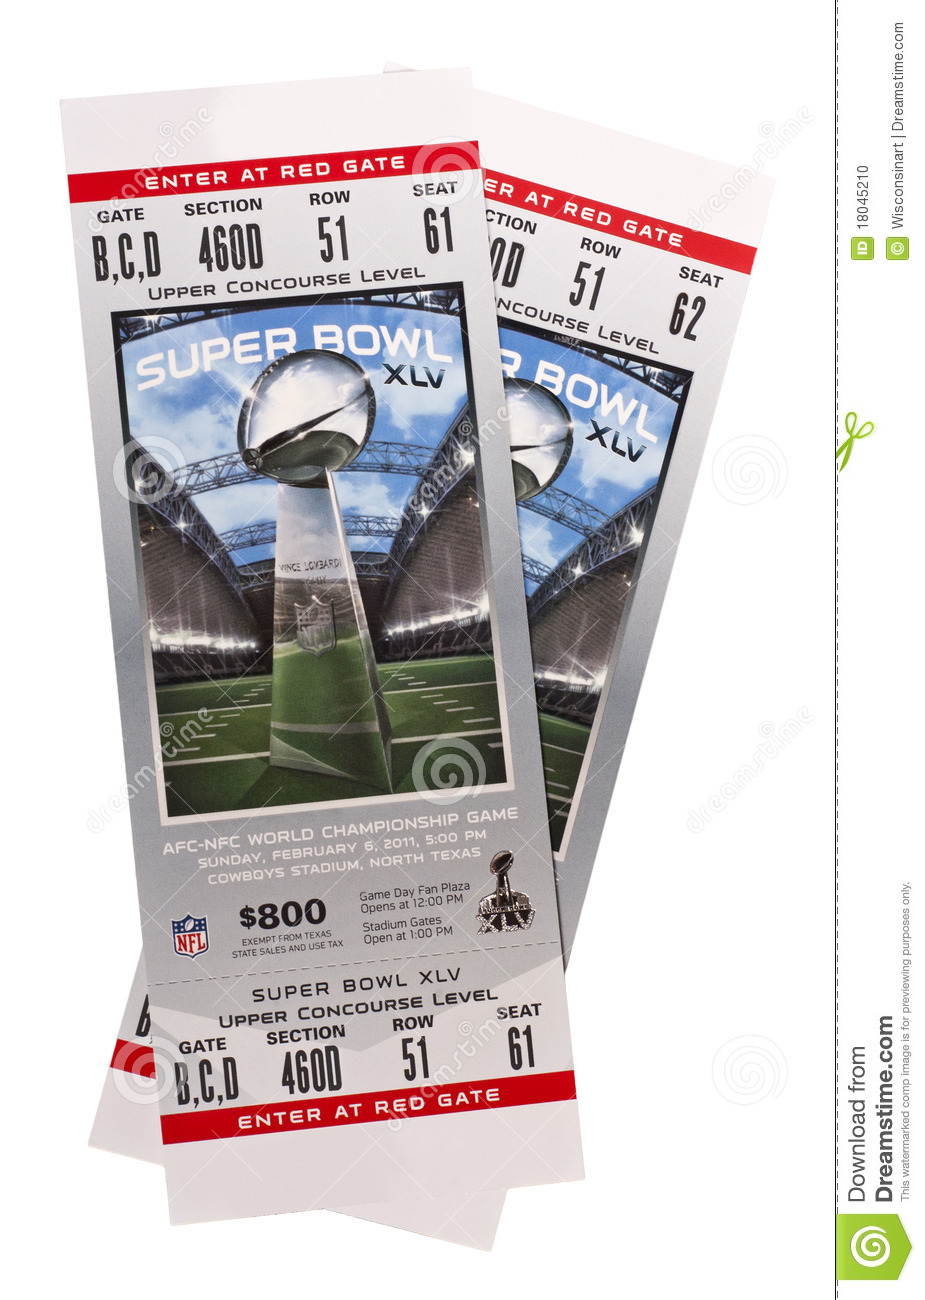 Superbowl XLV Tickets NFL American Football